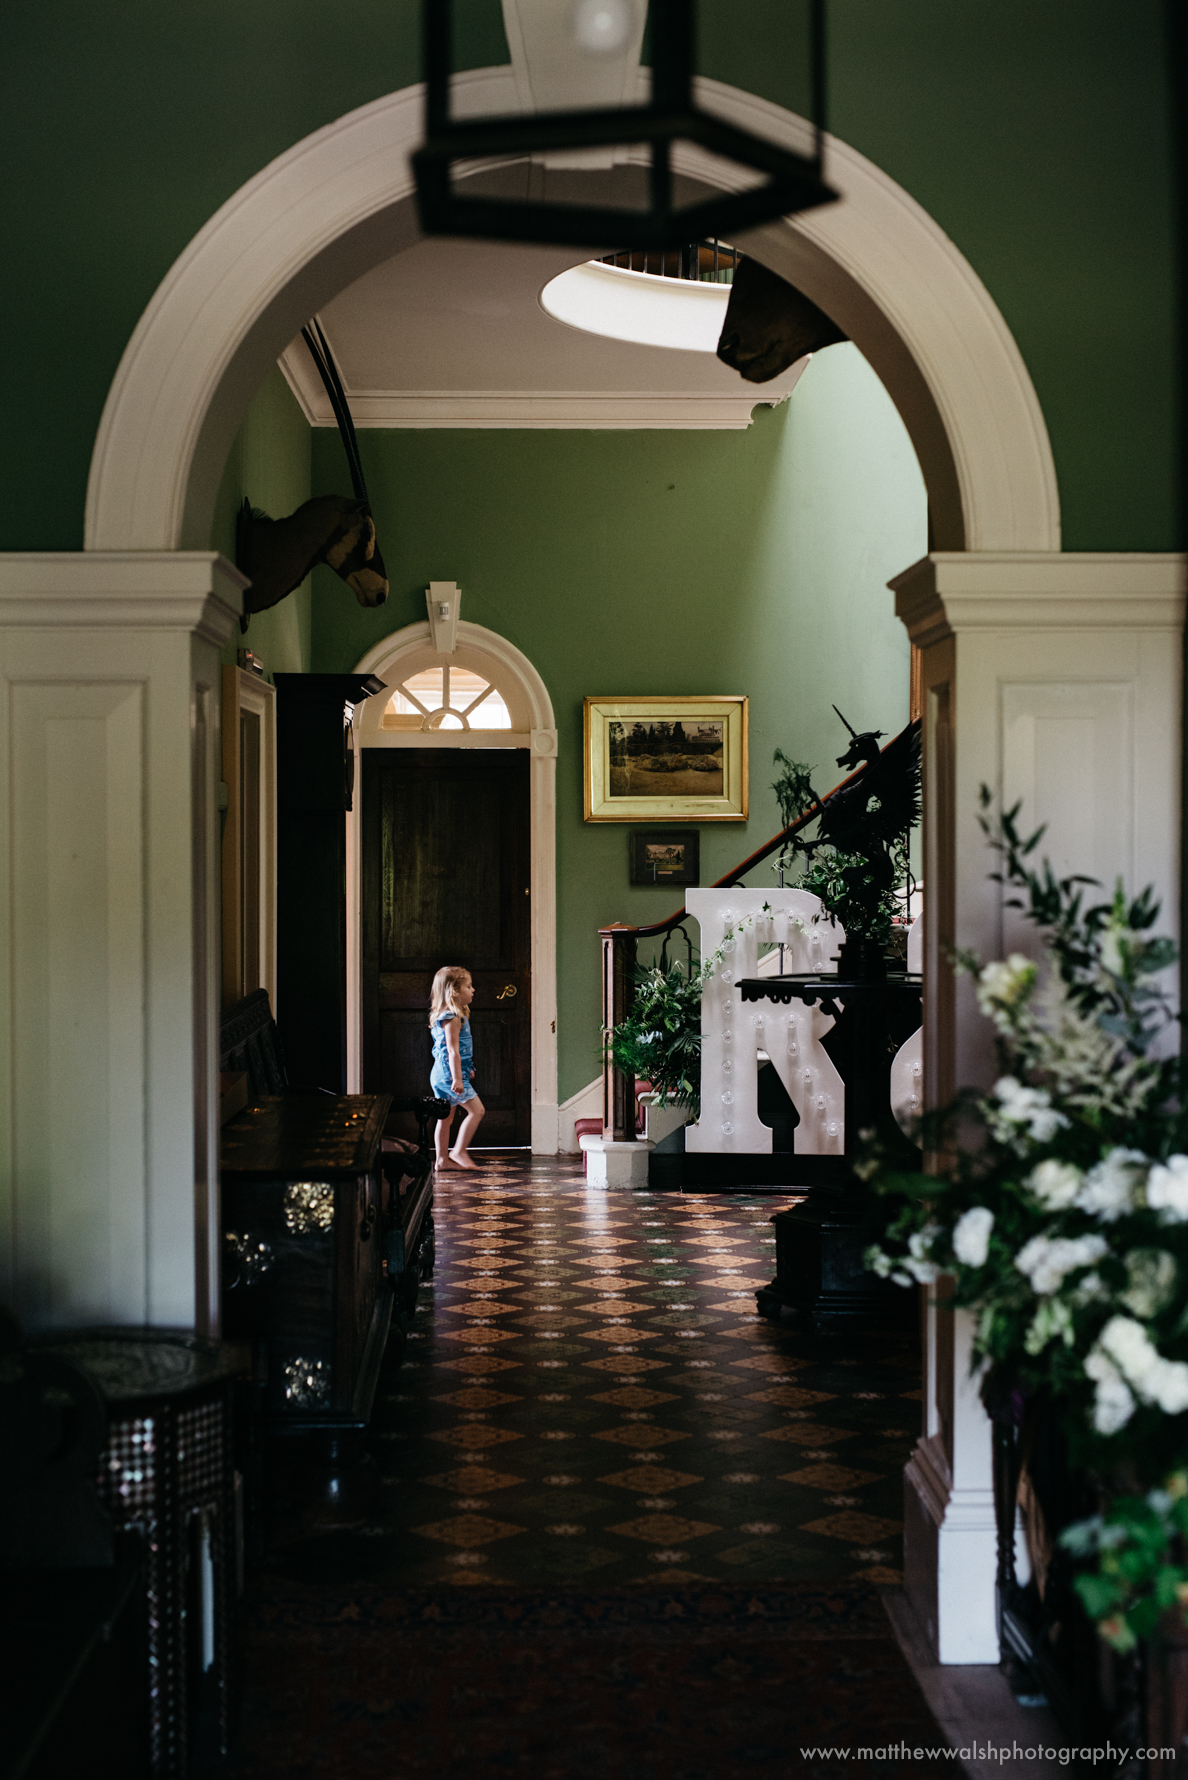 The wonderful colours of the hallway with spaces of natural light from the windows.